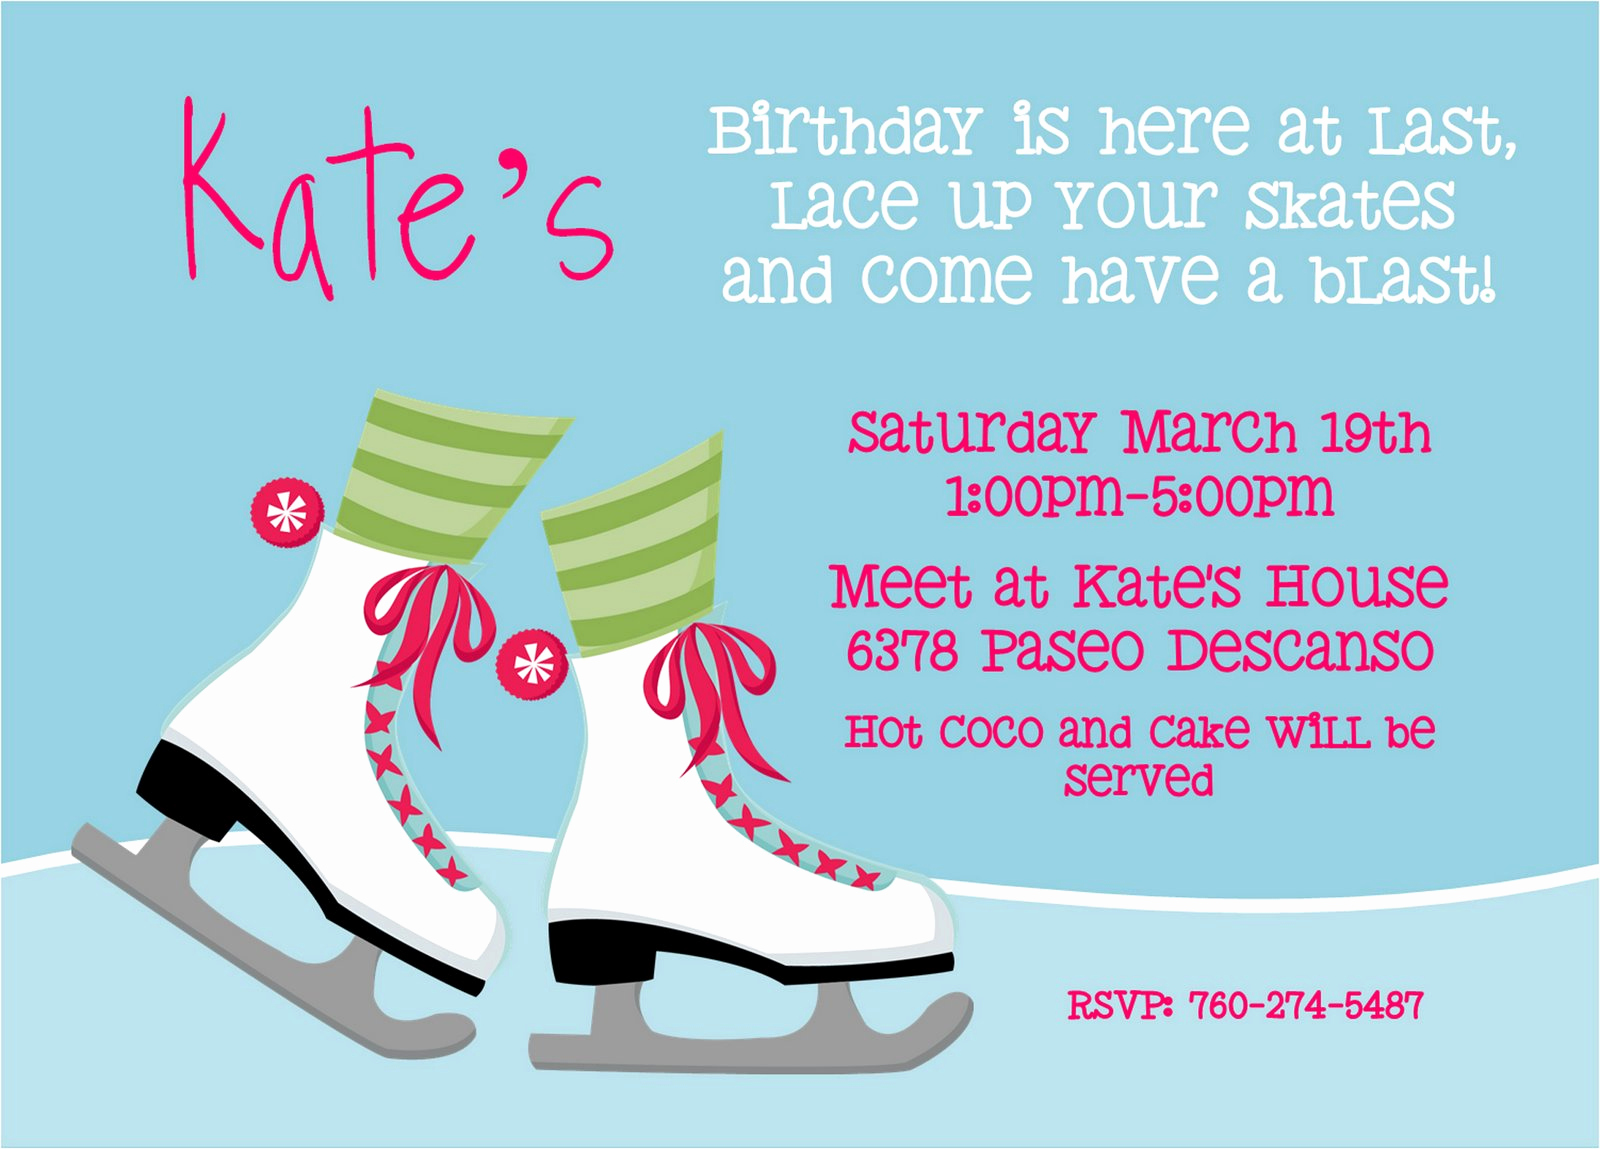 Skate Party Invitation Wording Inspirational Wait I for Kate S Skate Party